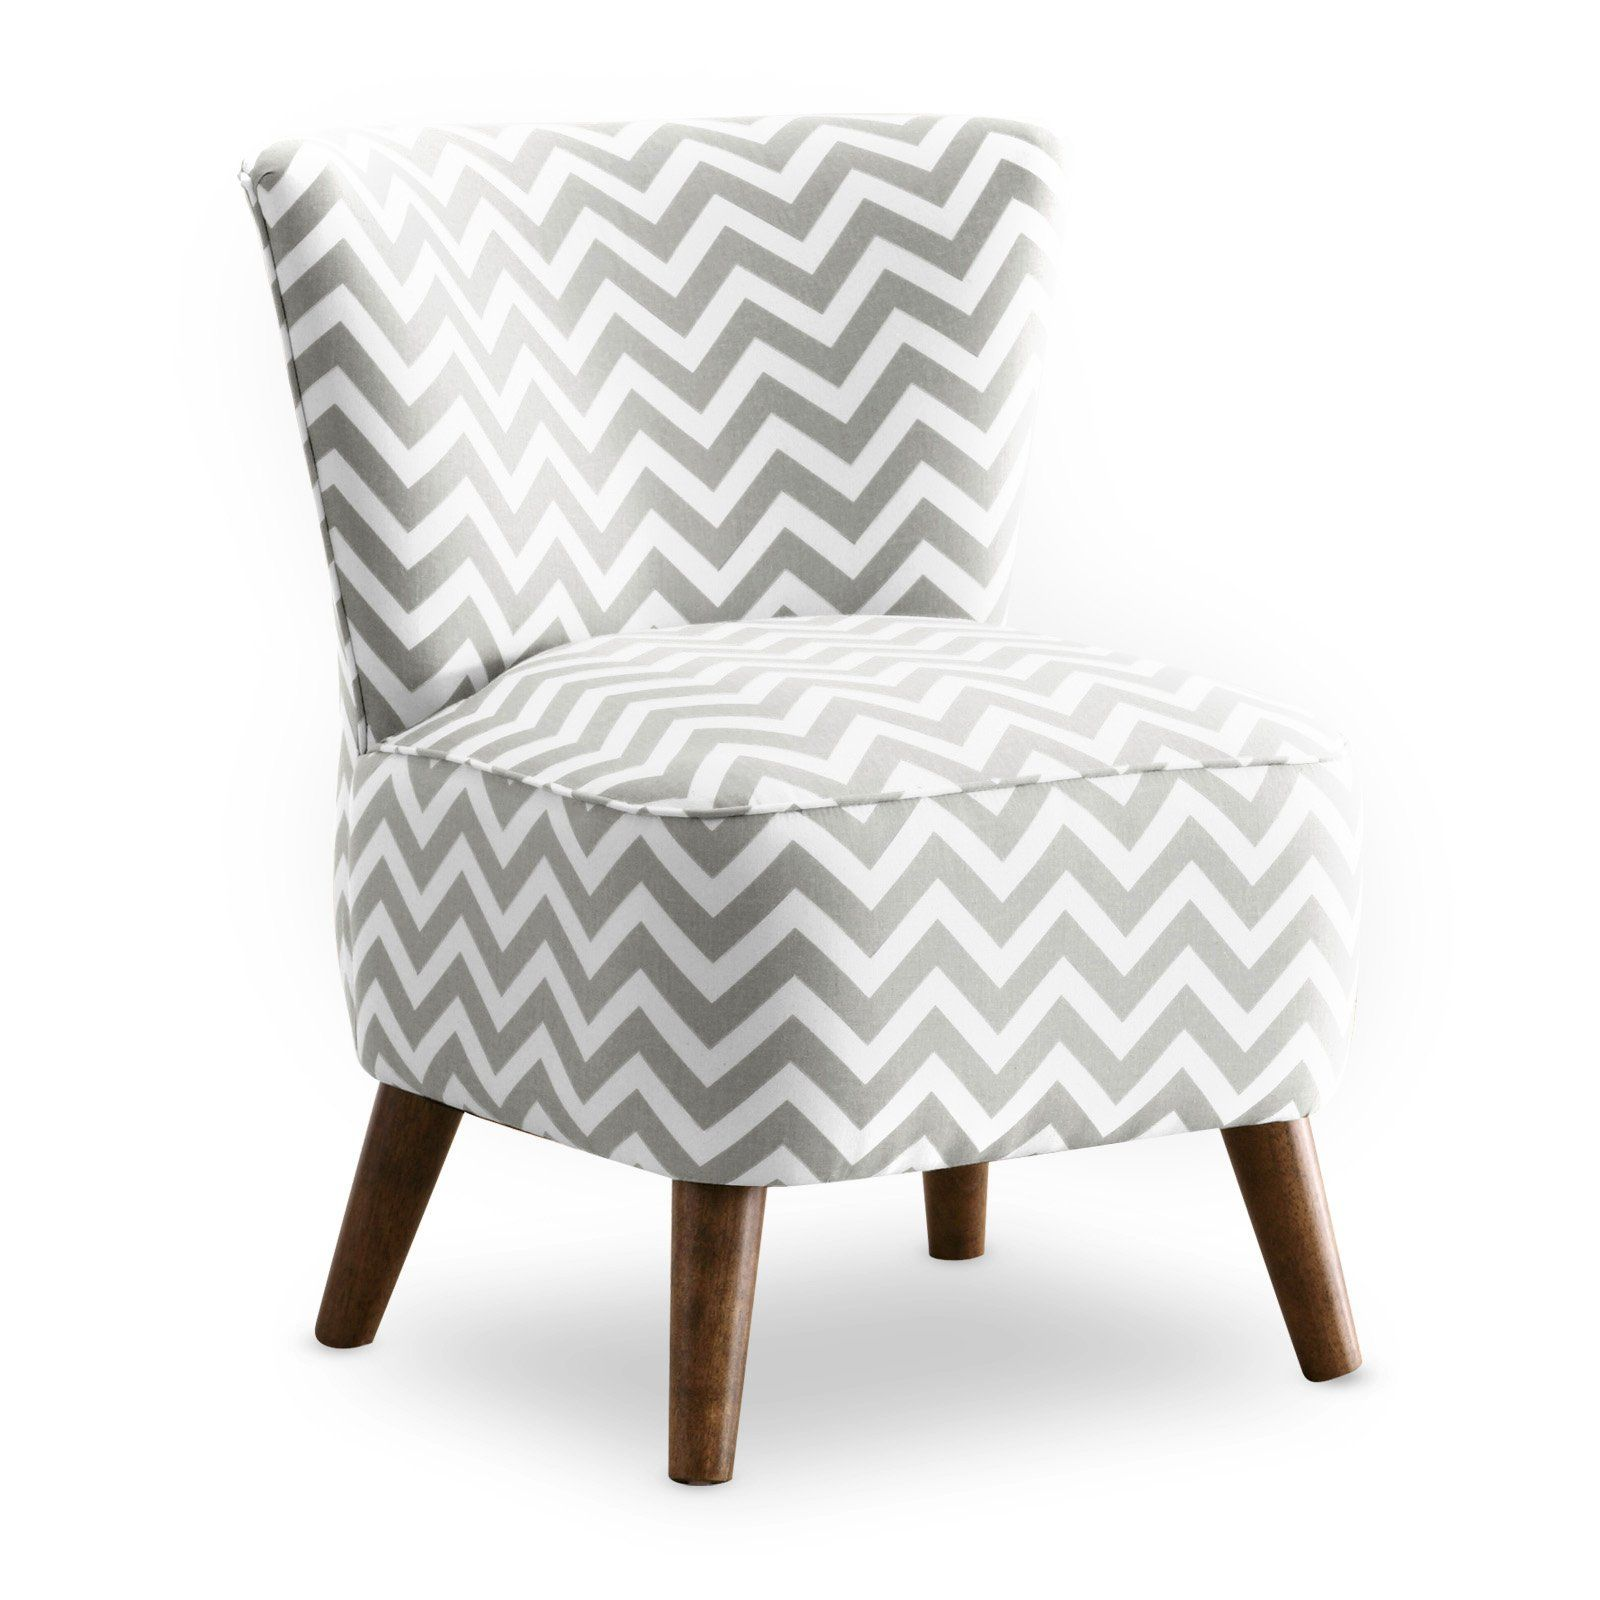 Mcm Chair Zig Zag Grey And White Accent Chairs Under